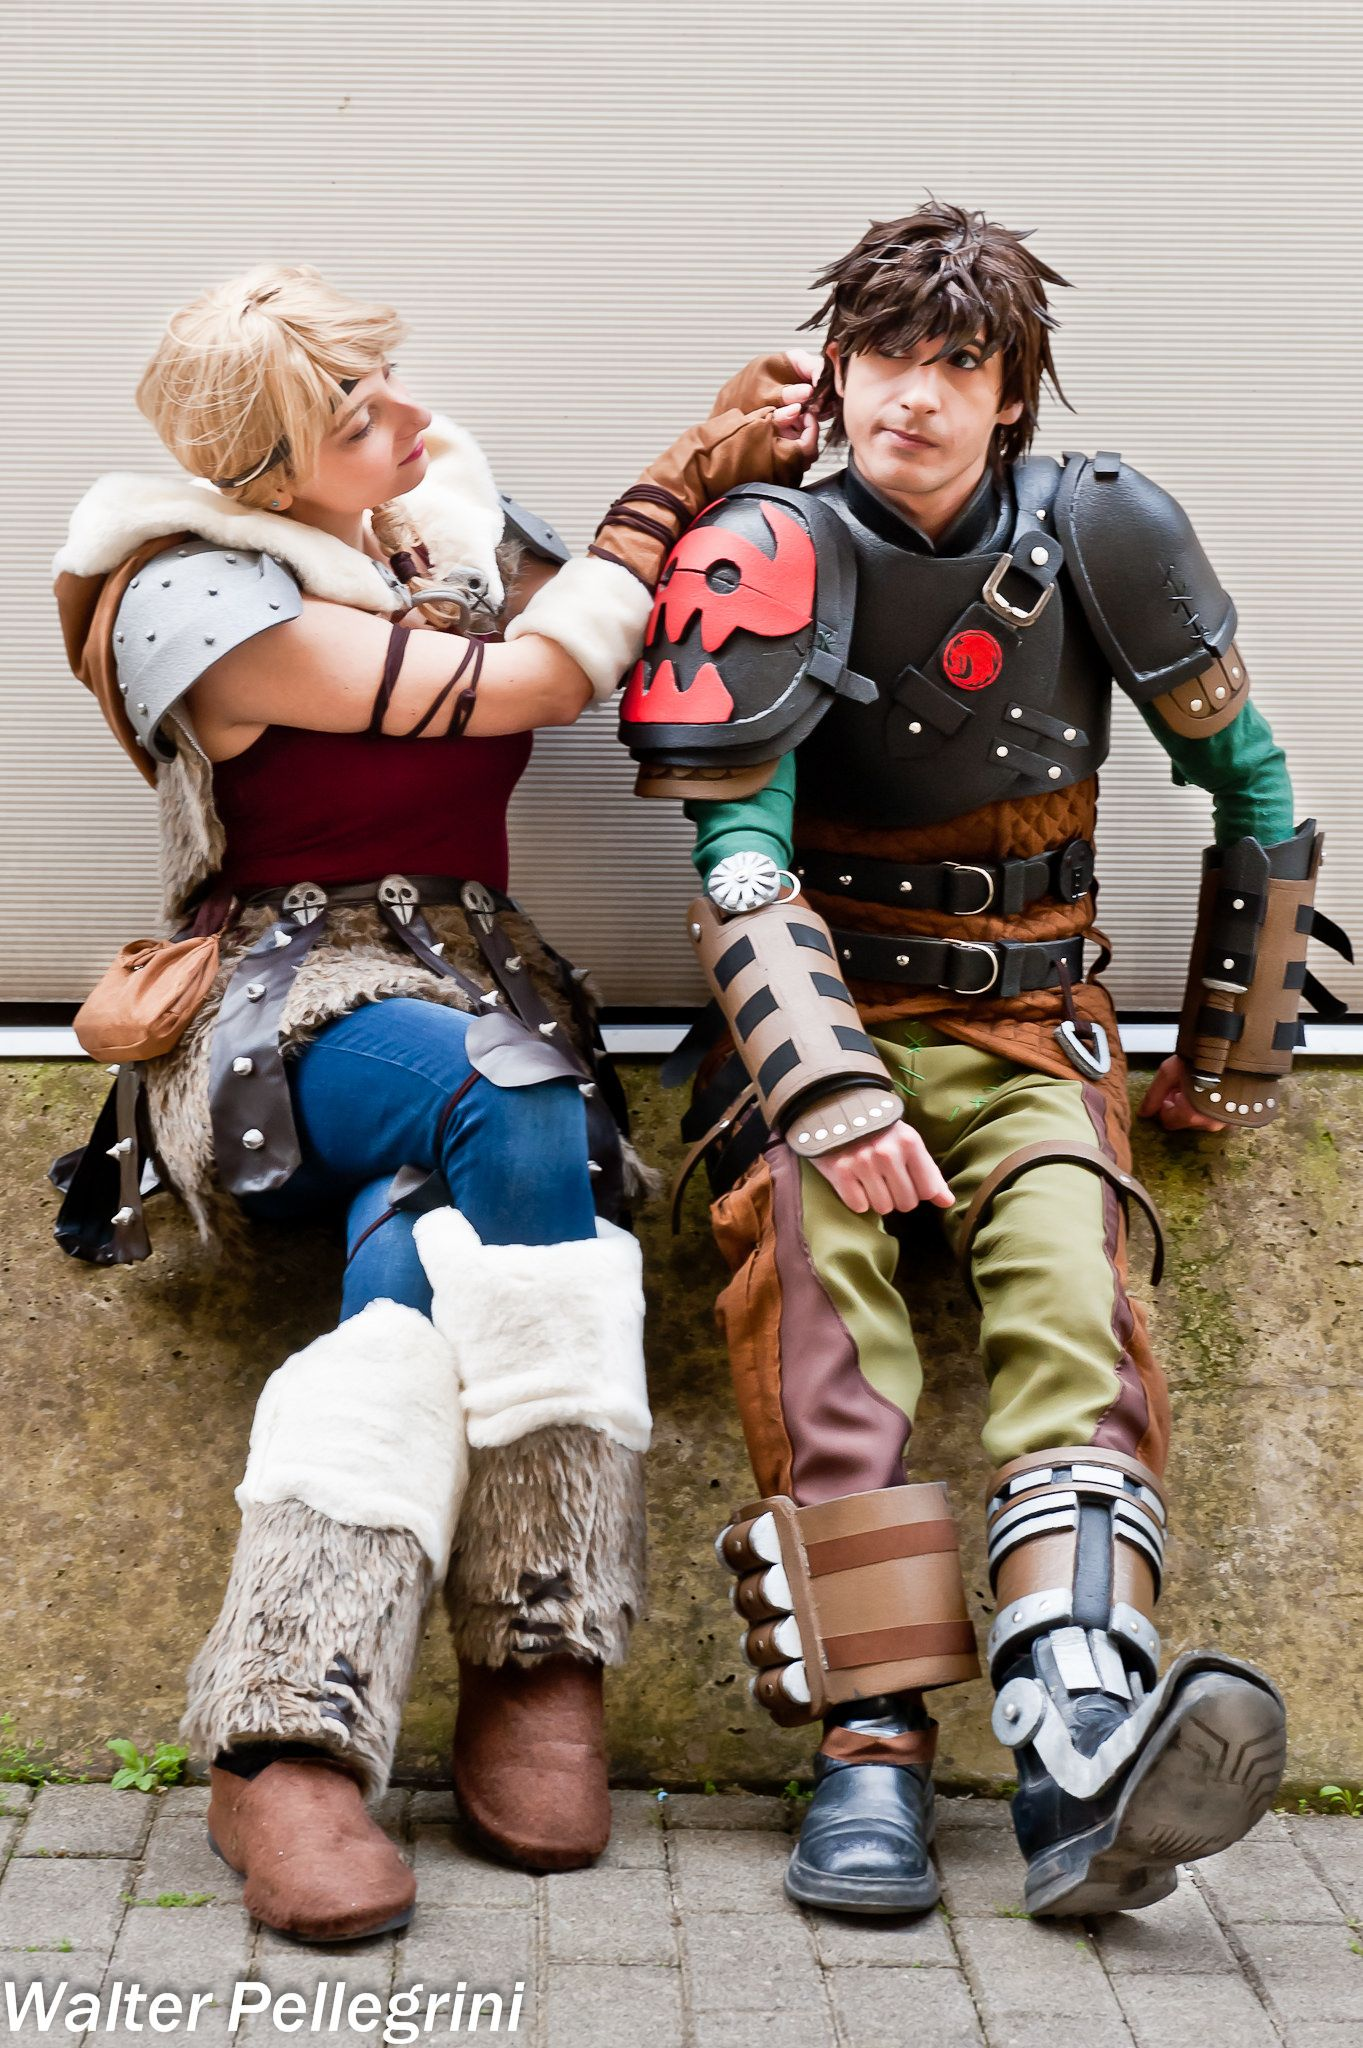 How to Train Your Dragon  cosplay at Romics XVII - PC  Walter Pellegrini 7fe878575219